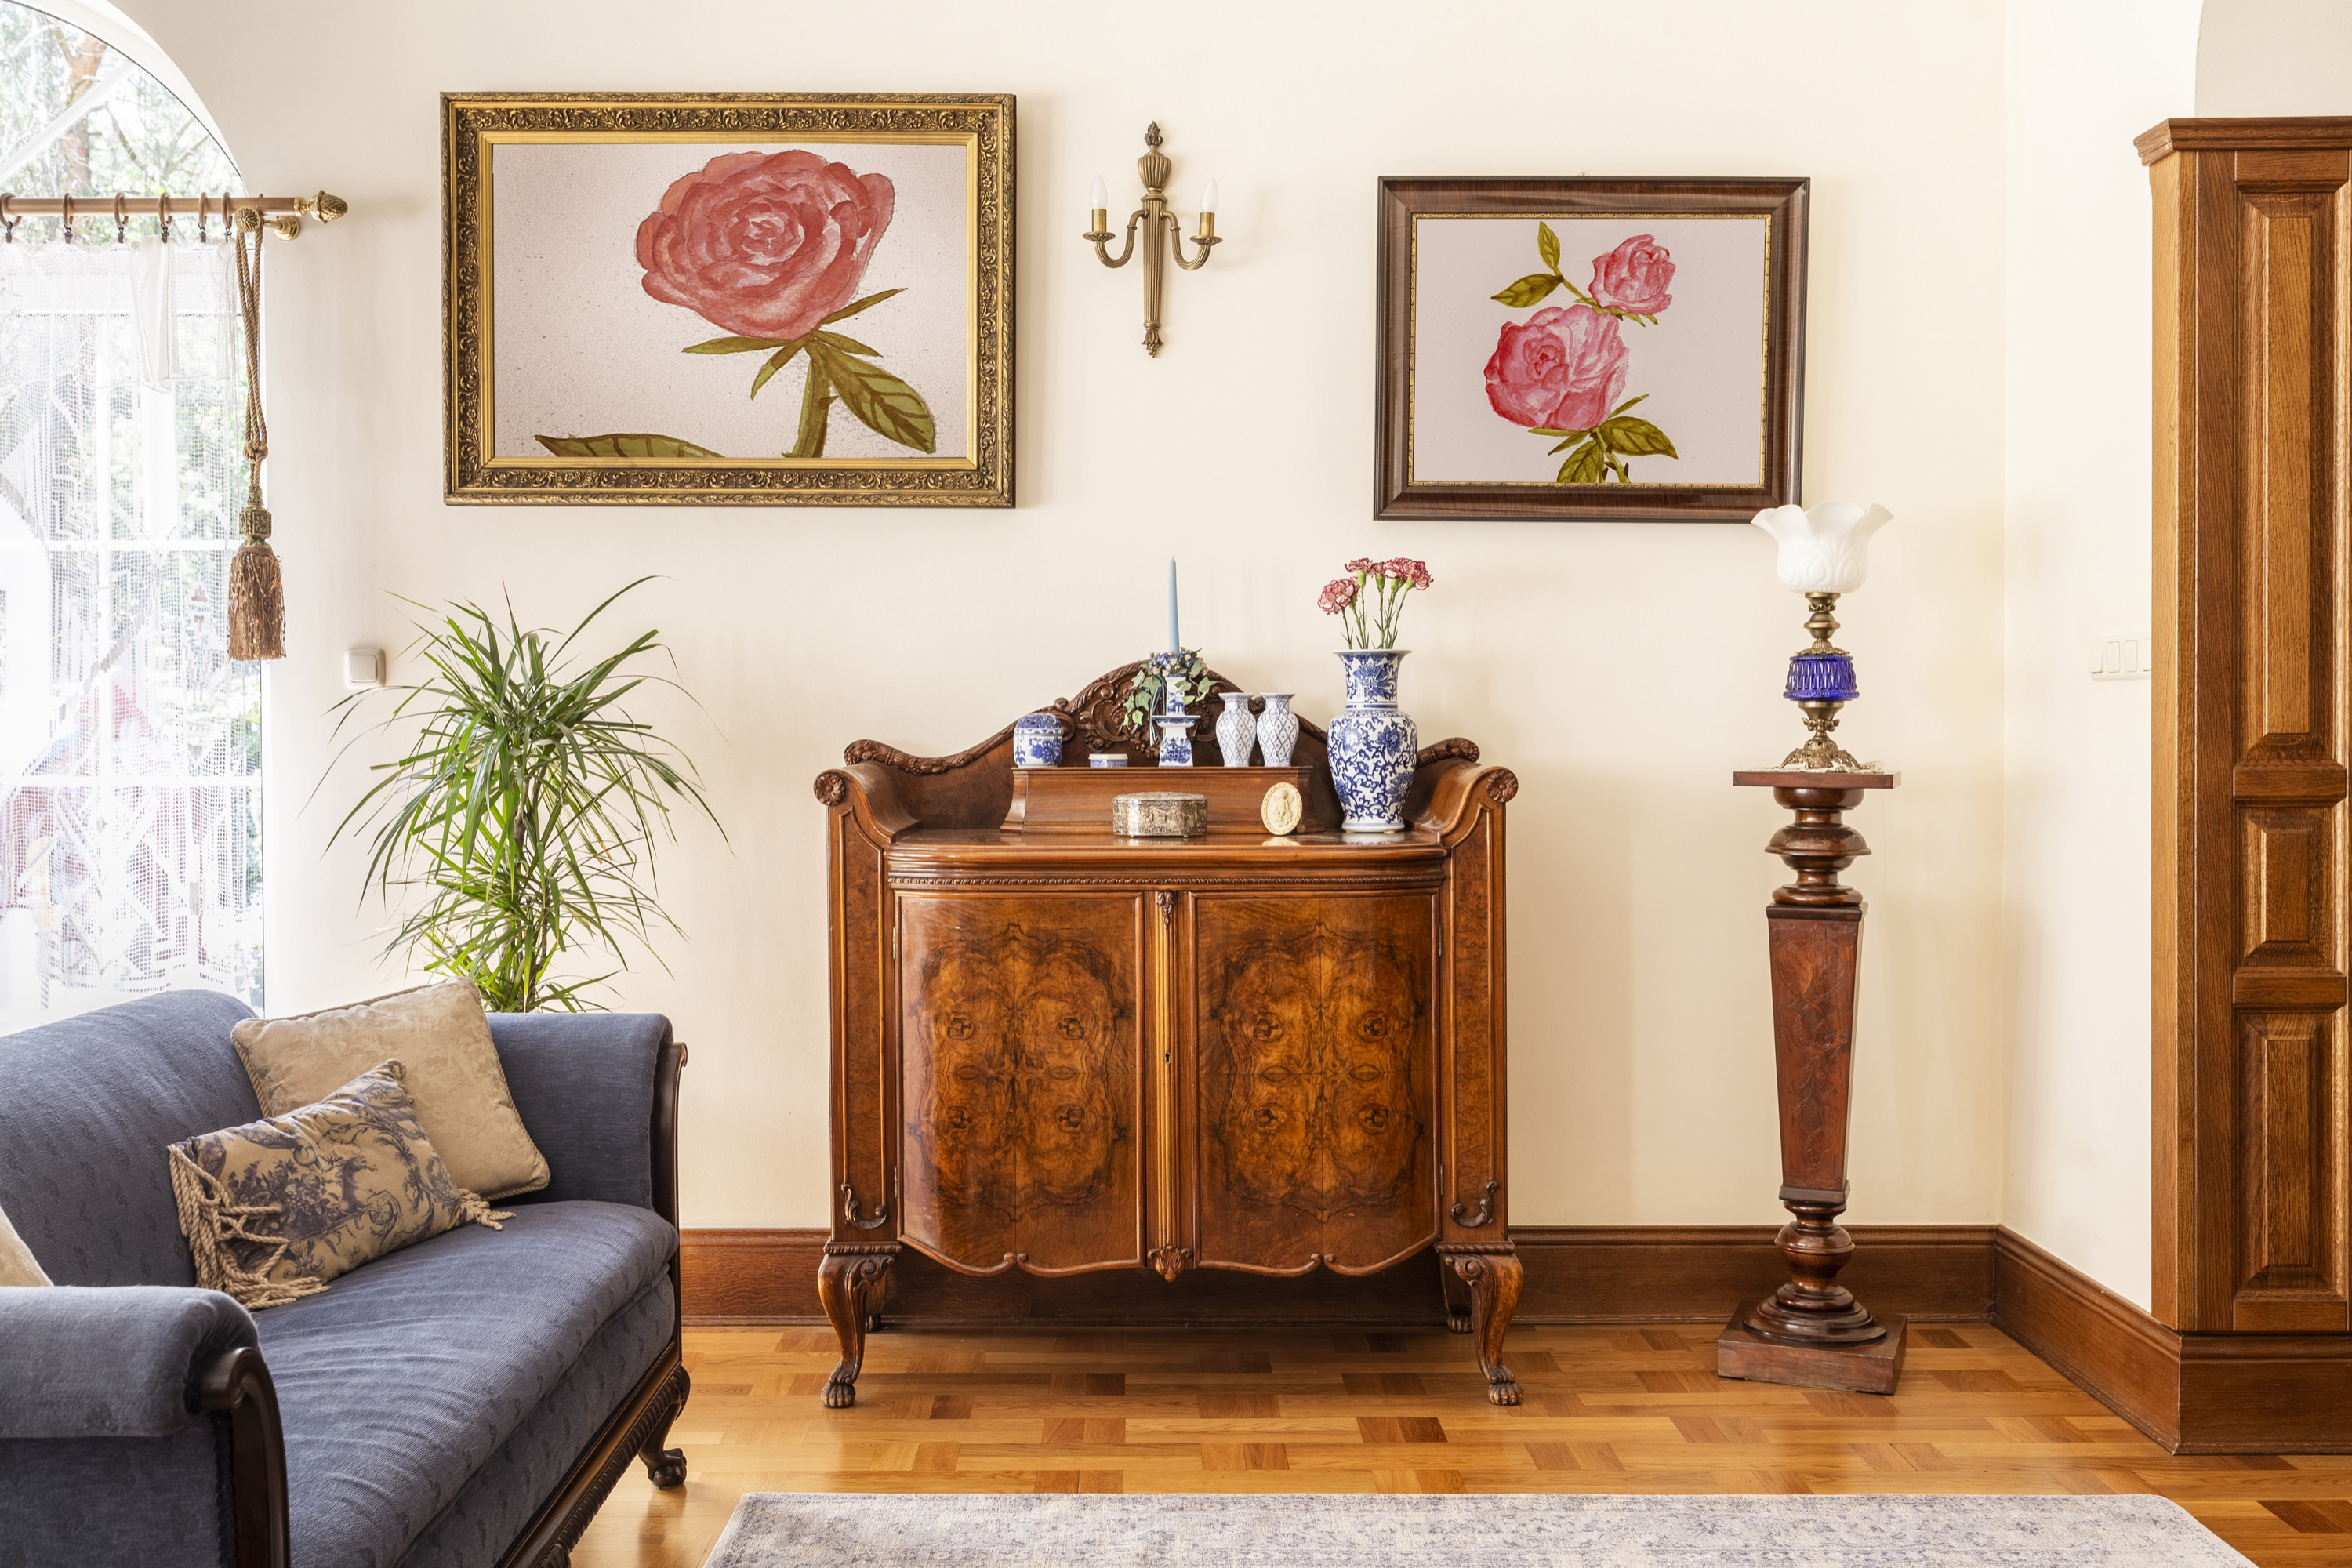 A light filled room with cream walls and wood floors, antique wood dresser in the center, with other antique lamps, blue sofa, vases, and 2 rose paintings hung on the wall where the dresser is